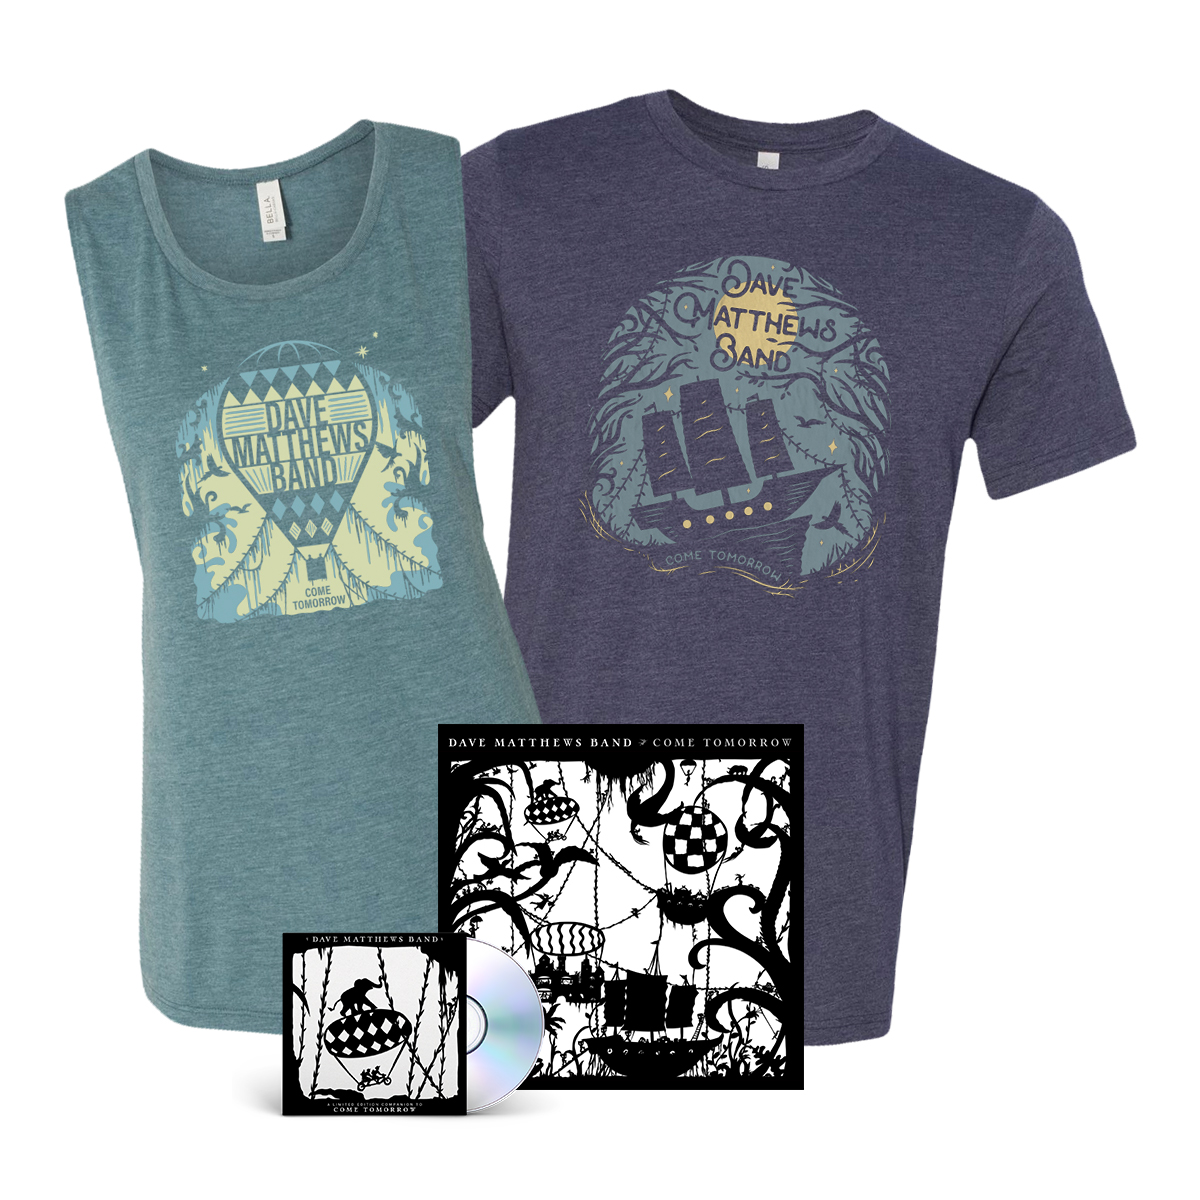 Come Tomorrow Album + Shirt Bundle